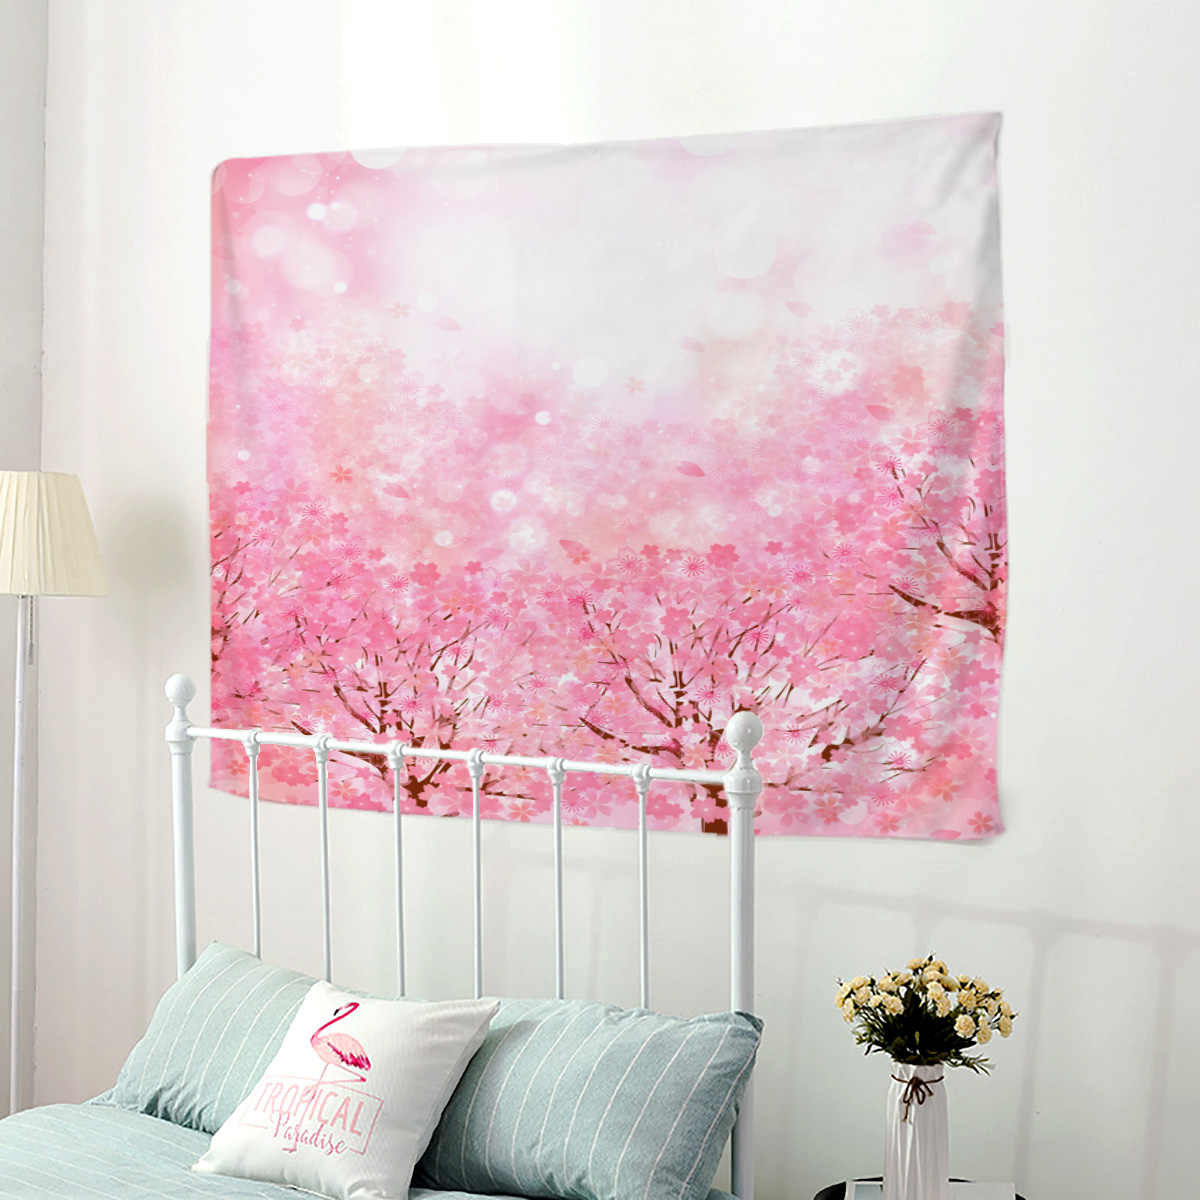 Goohome Japanese Style Cherry Blossoms Wall Hanging Wall Decor Tapestries Wall Decor Bedspread Blanket Bedding Sheet Towel